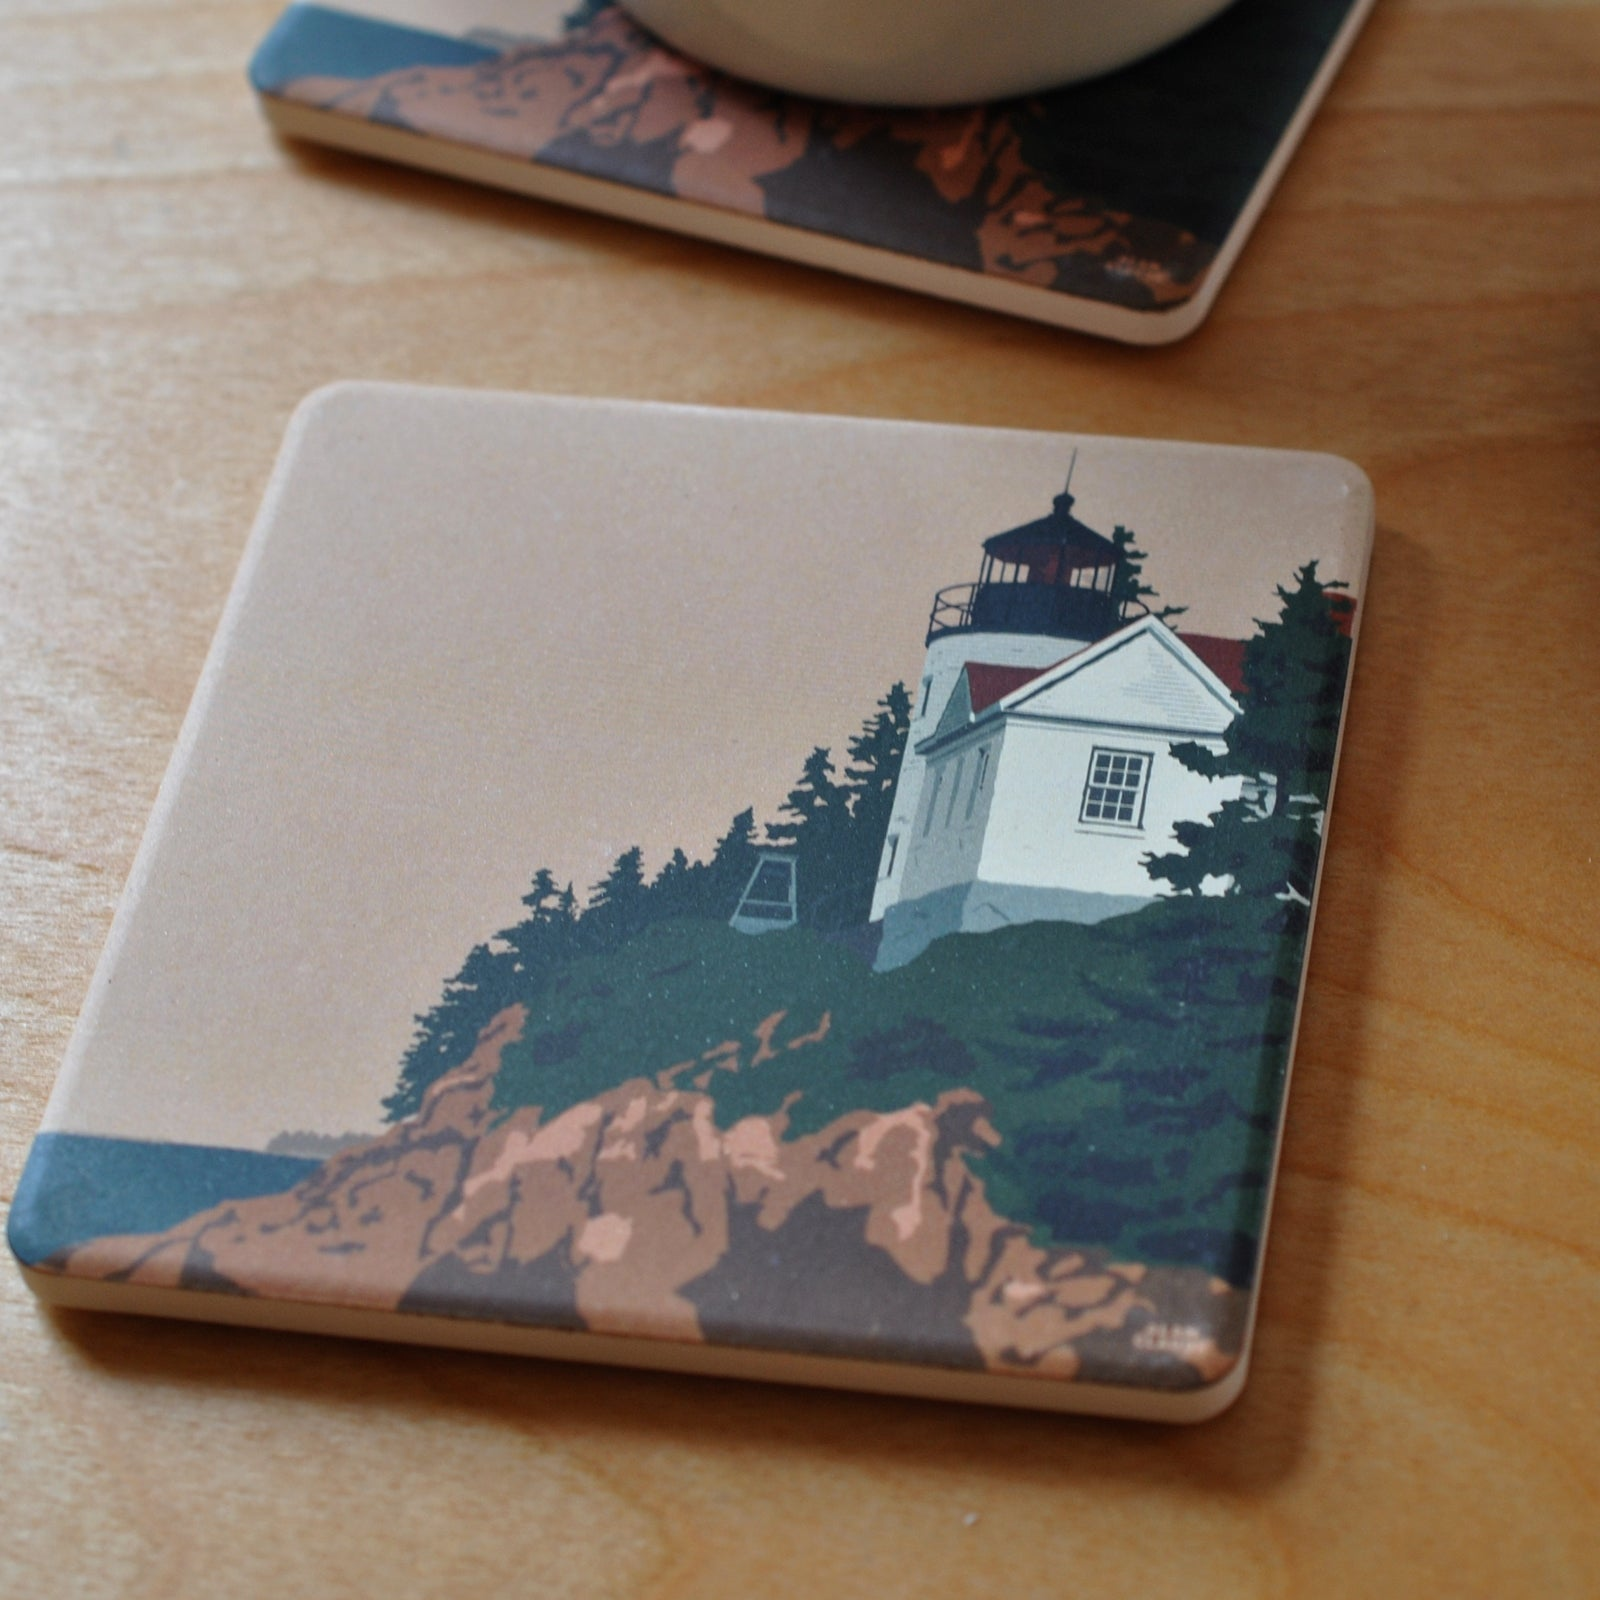 Bass Harbor Head Light ACADIA National Park Art Drink Coaster - Maine-